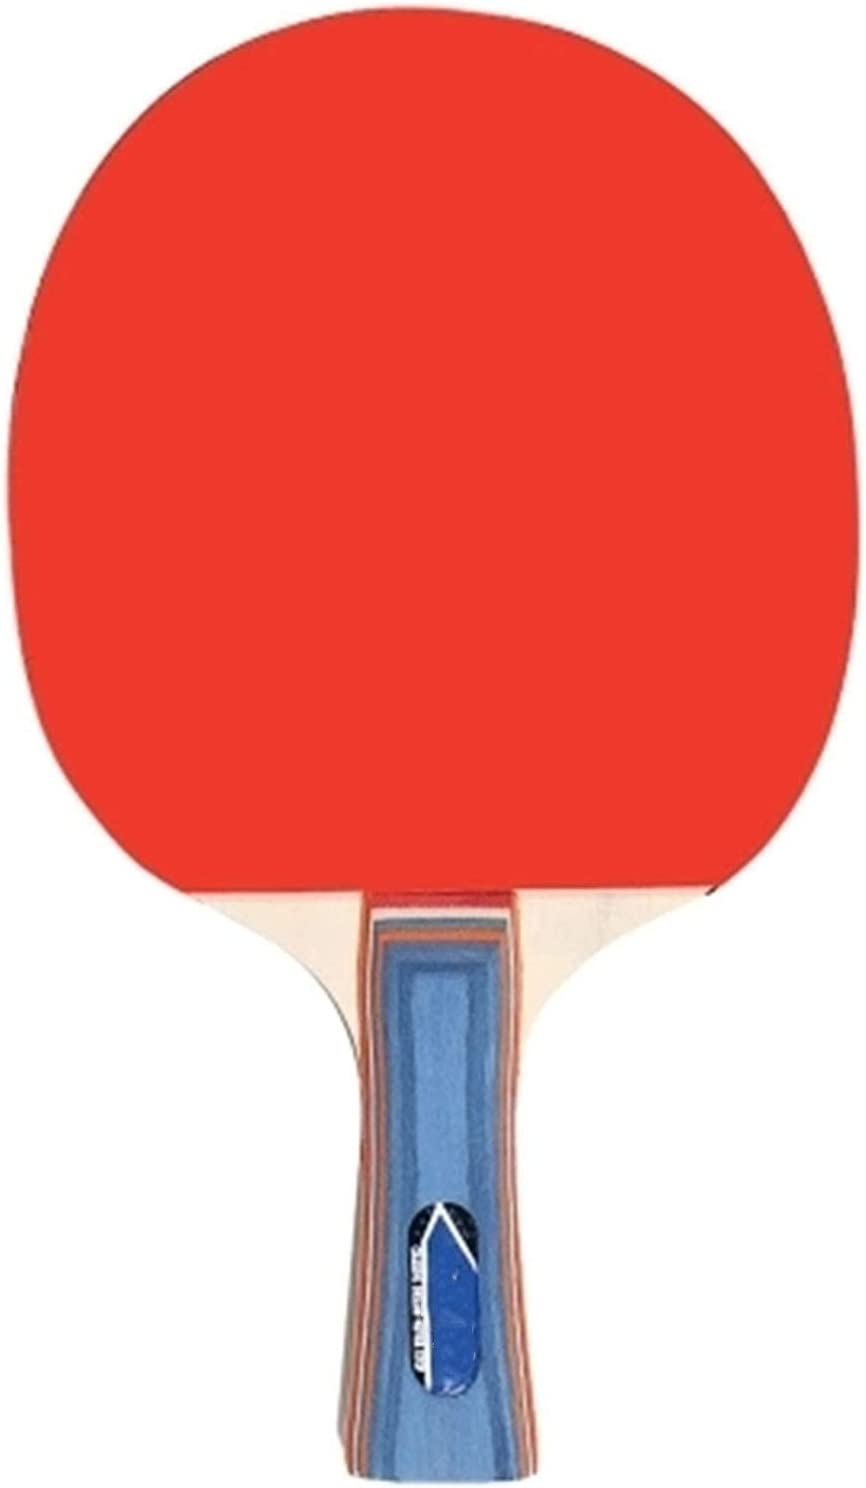 SMYONGPING Ping Pong Paddle Table Te Player Quality inspection Set Tennis 2 online shop